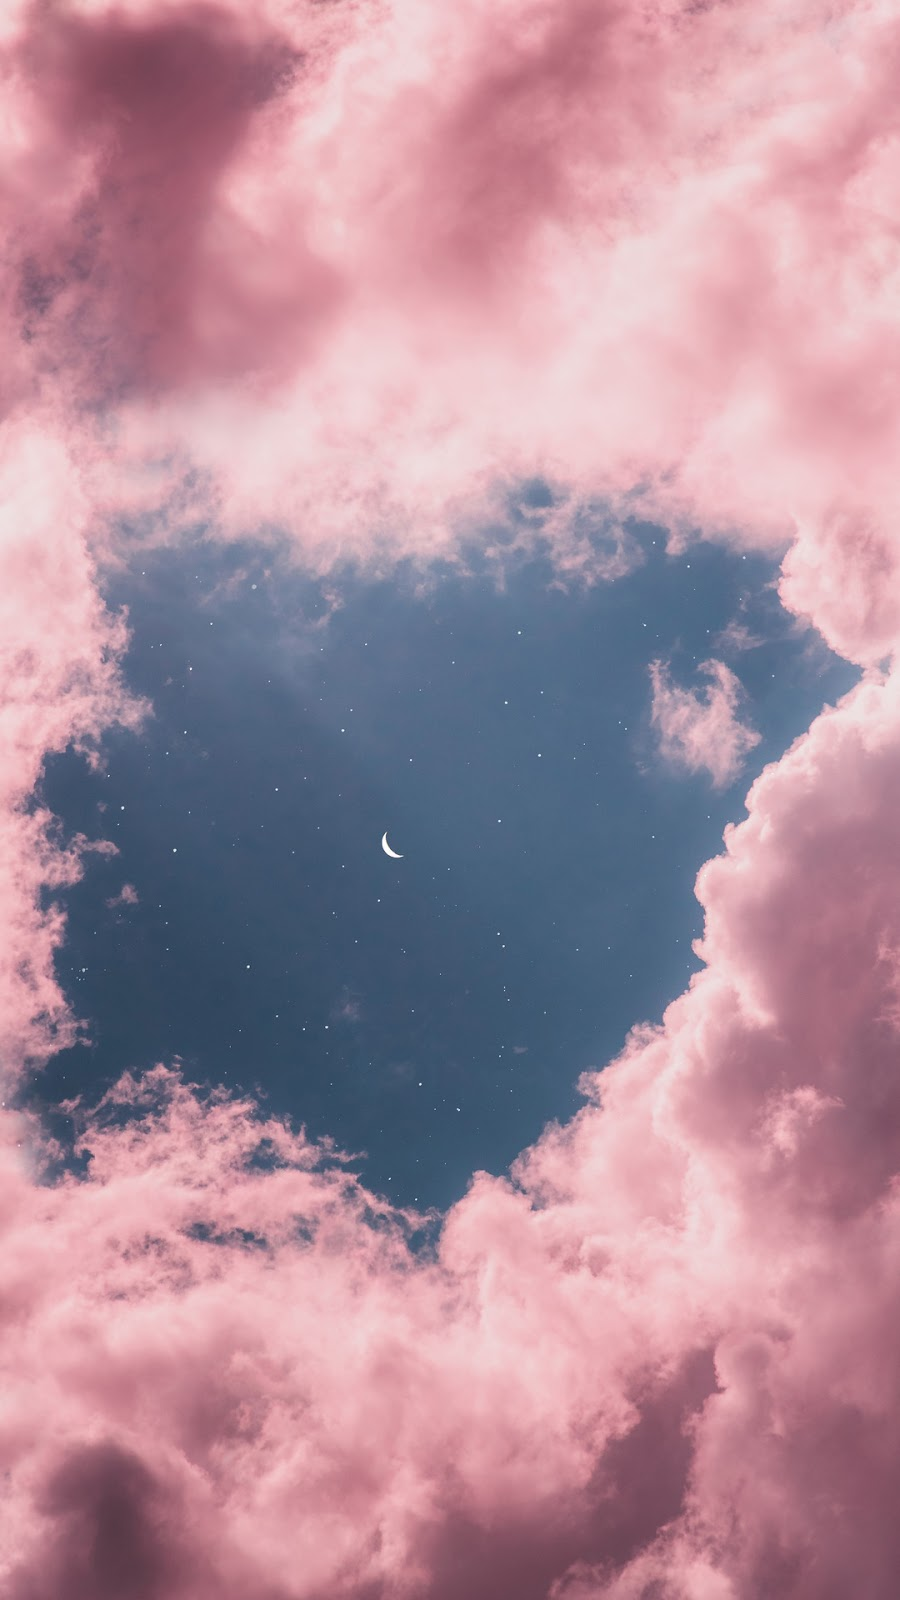 Moon aesthetic wallpaper